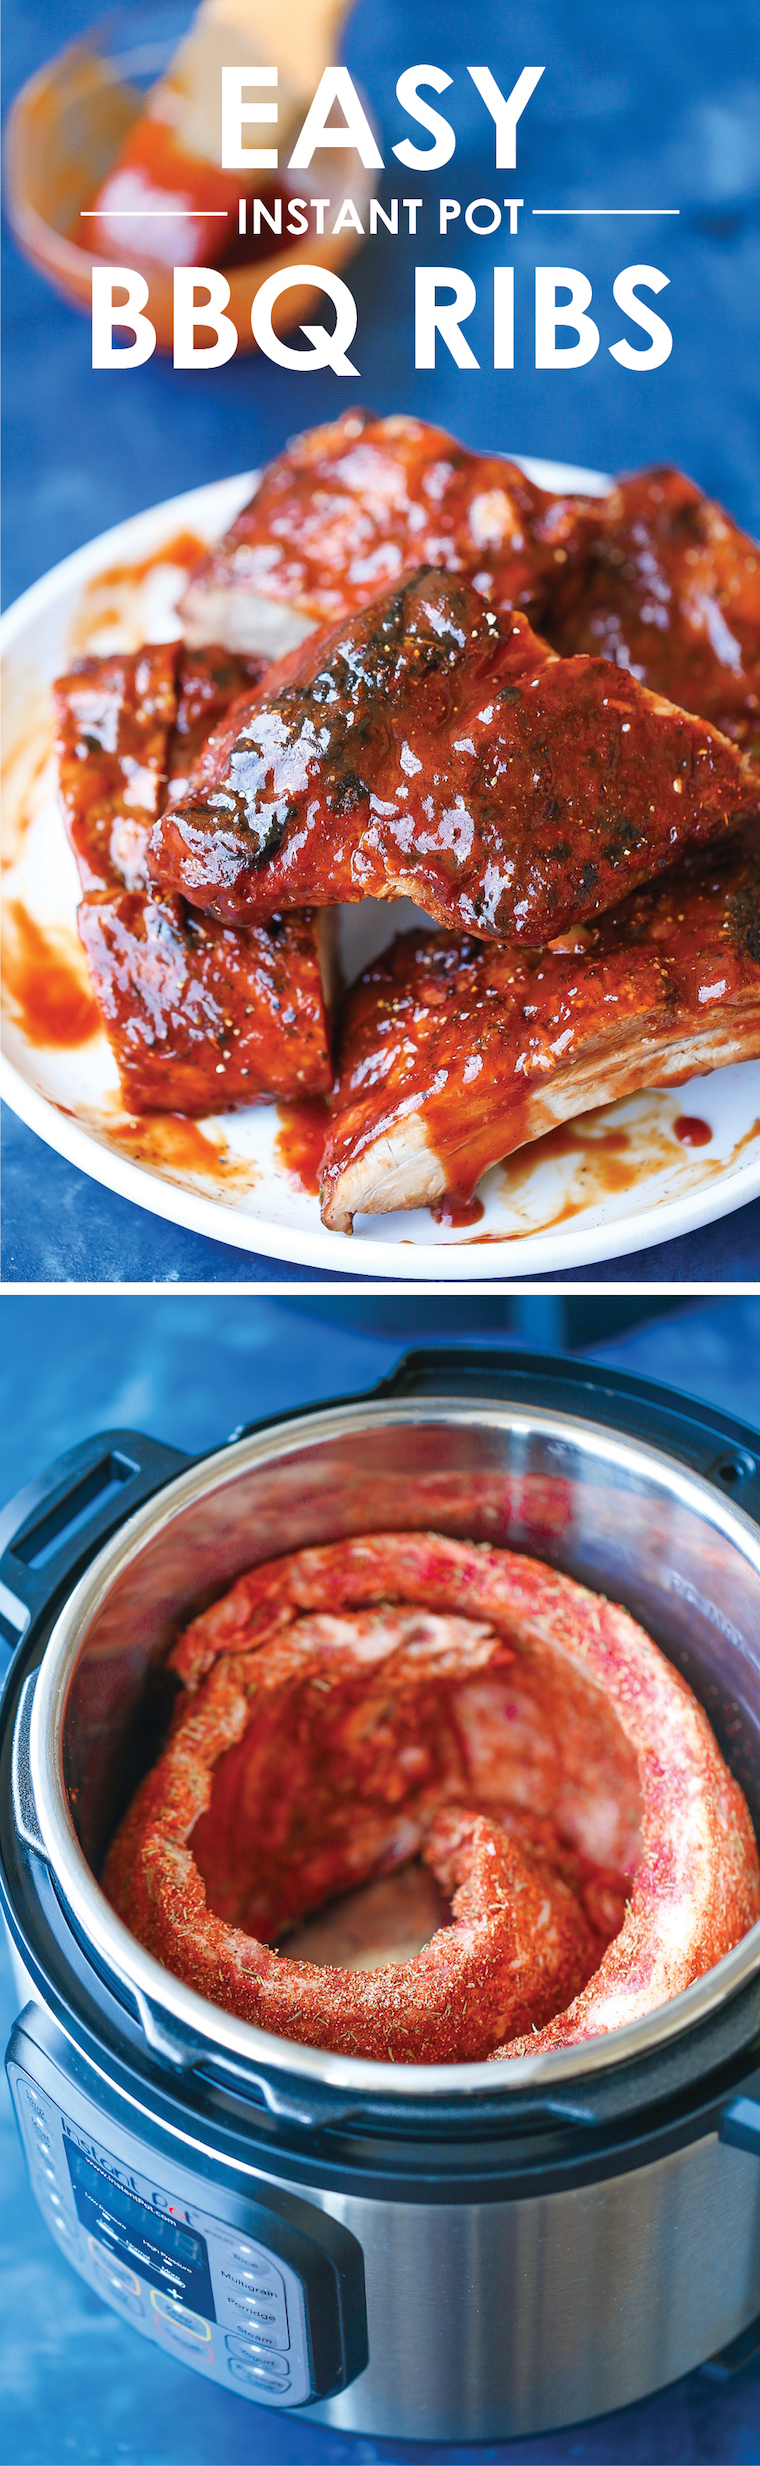 Easy Instant Pot BBQ Ribs